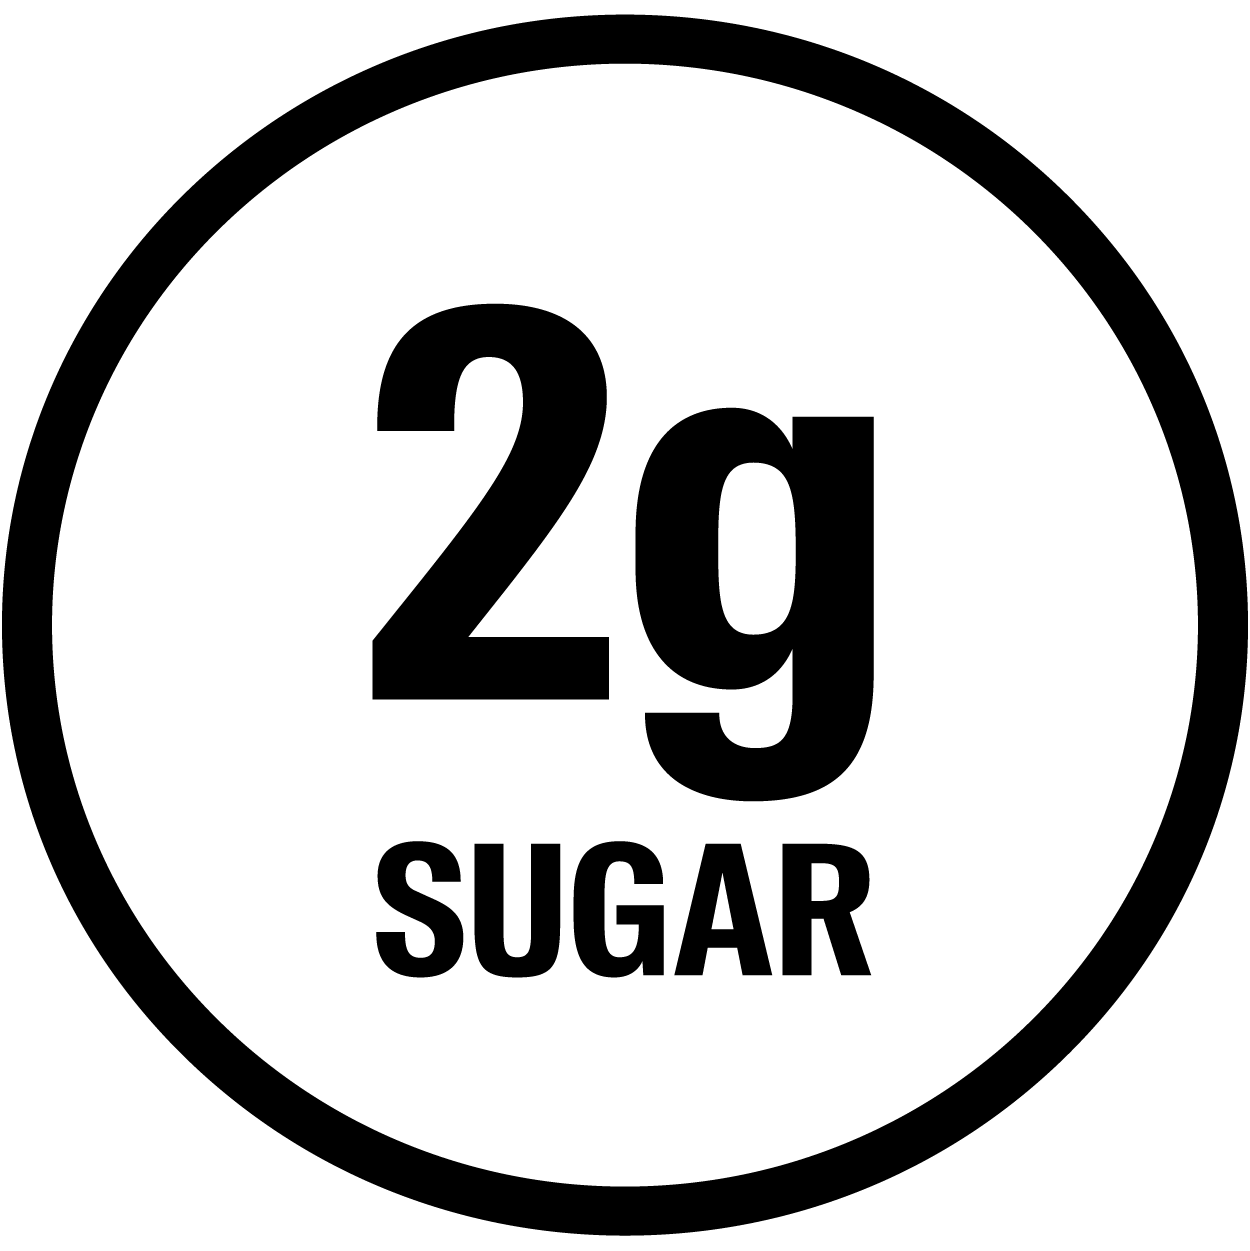 2g Sugar. No Added Sugar.